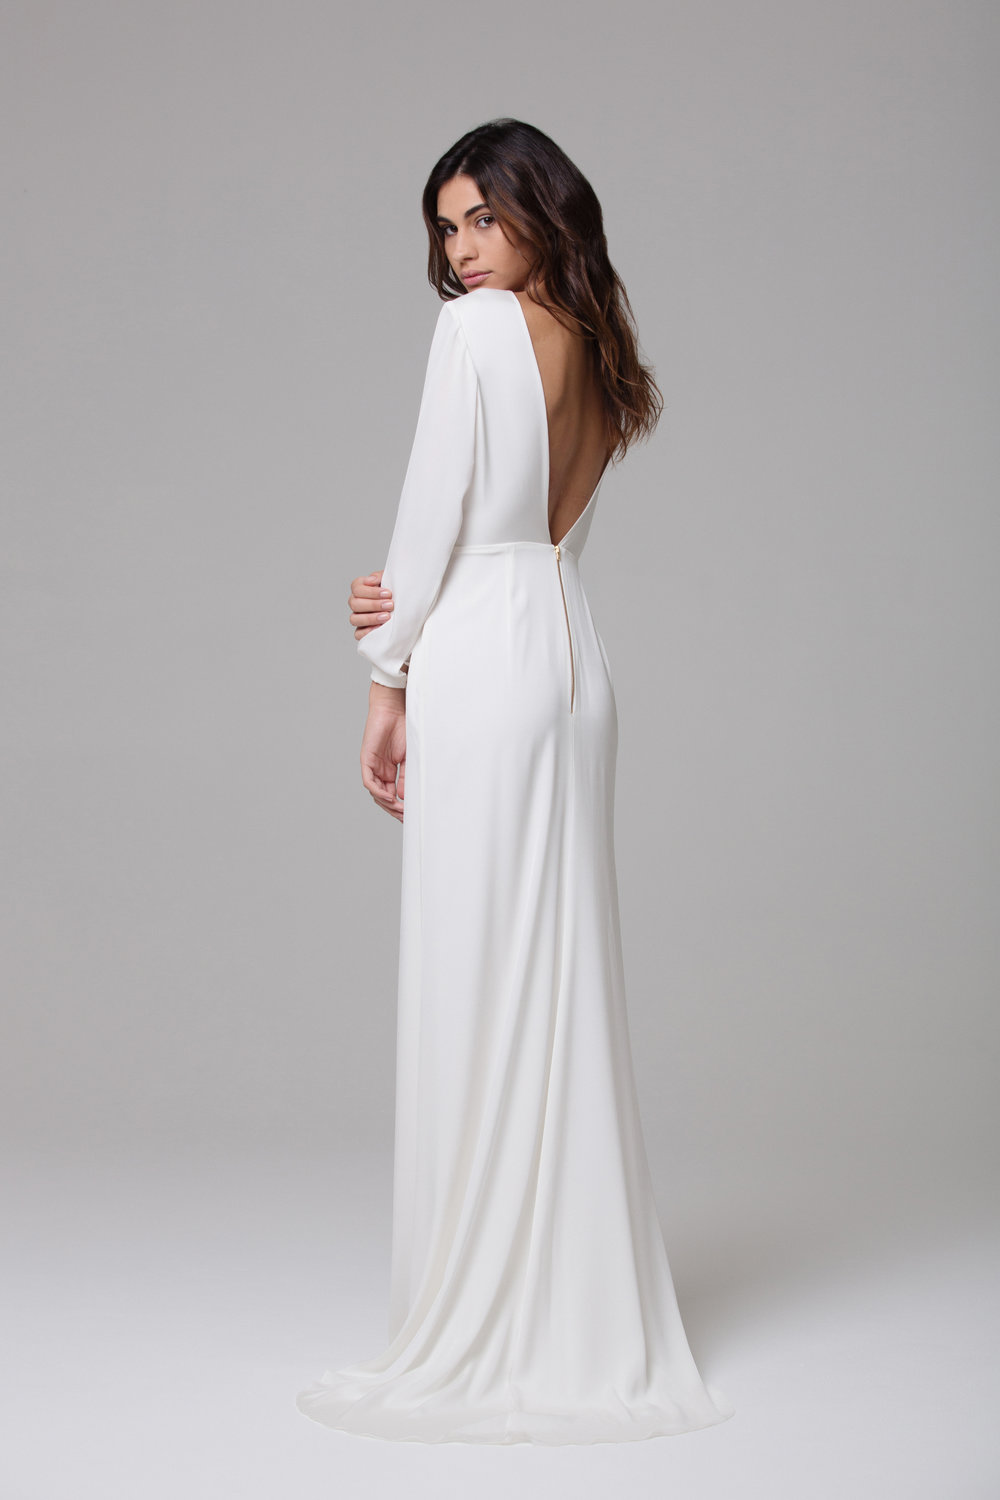 Gowns - View all gowns